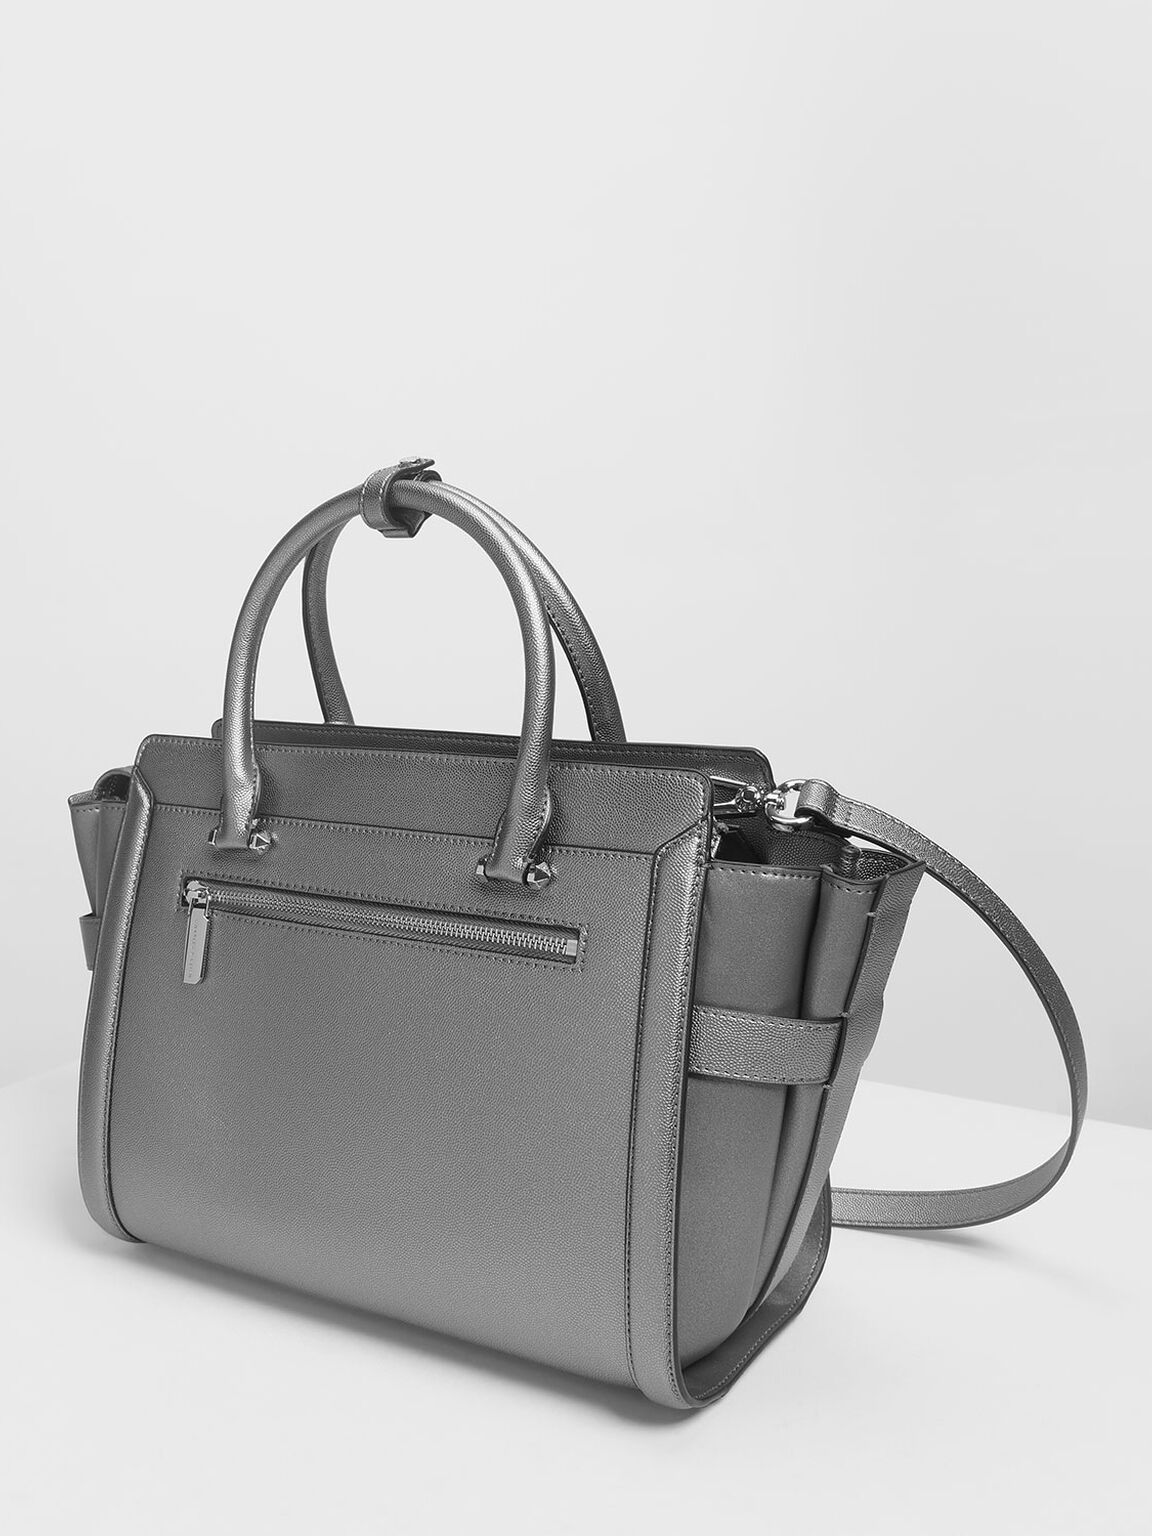 Classic Structured City Bag, Pewter, hi-res